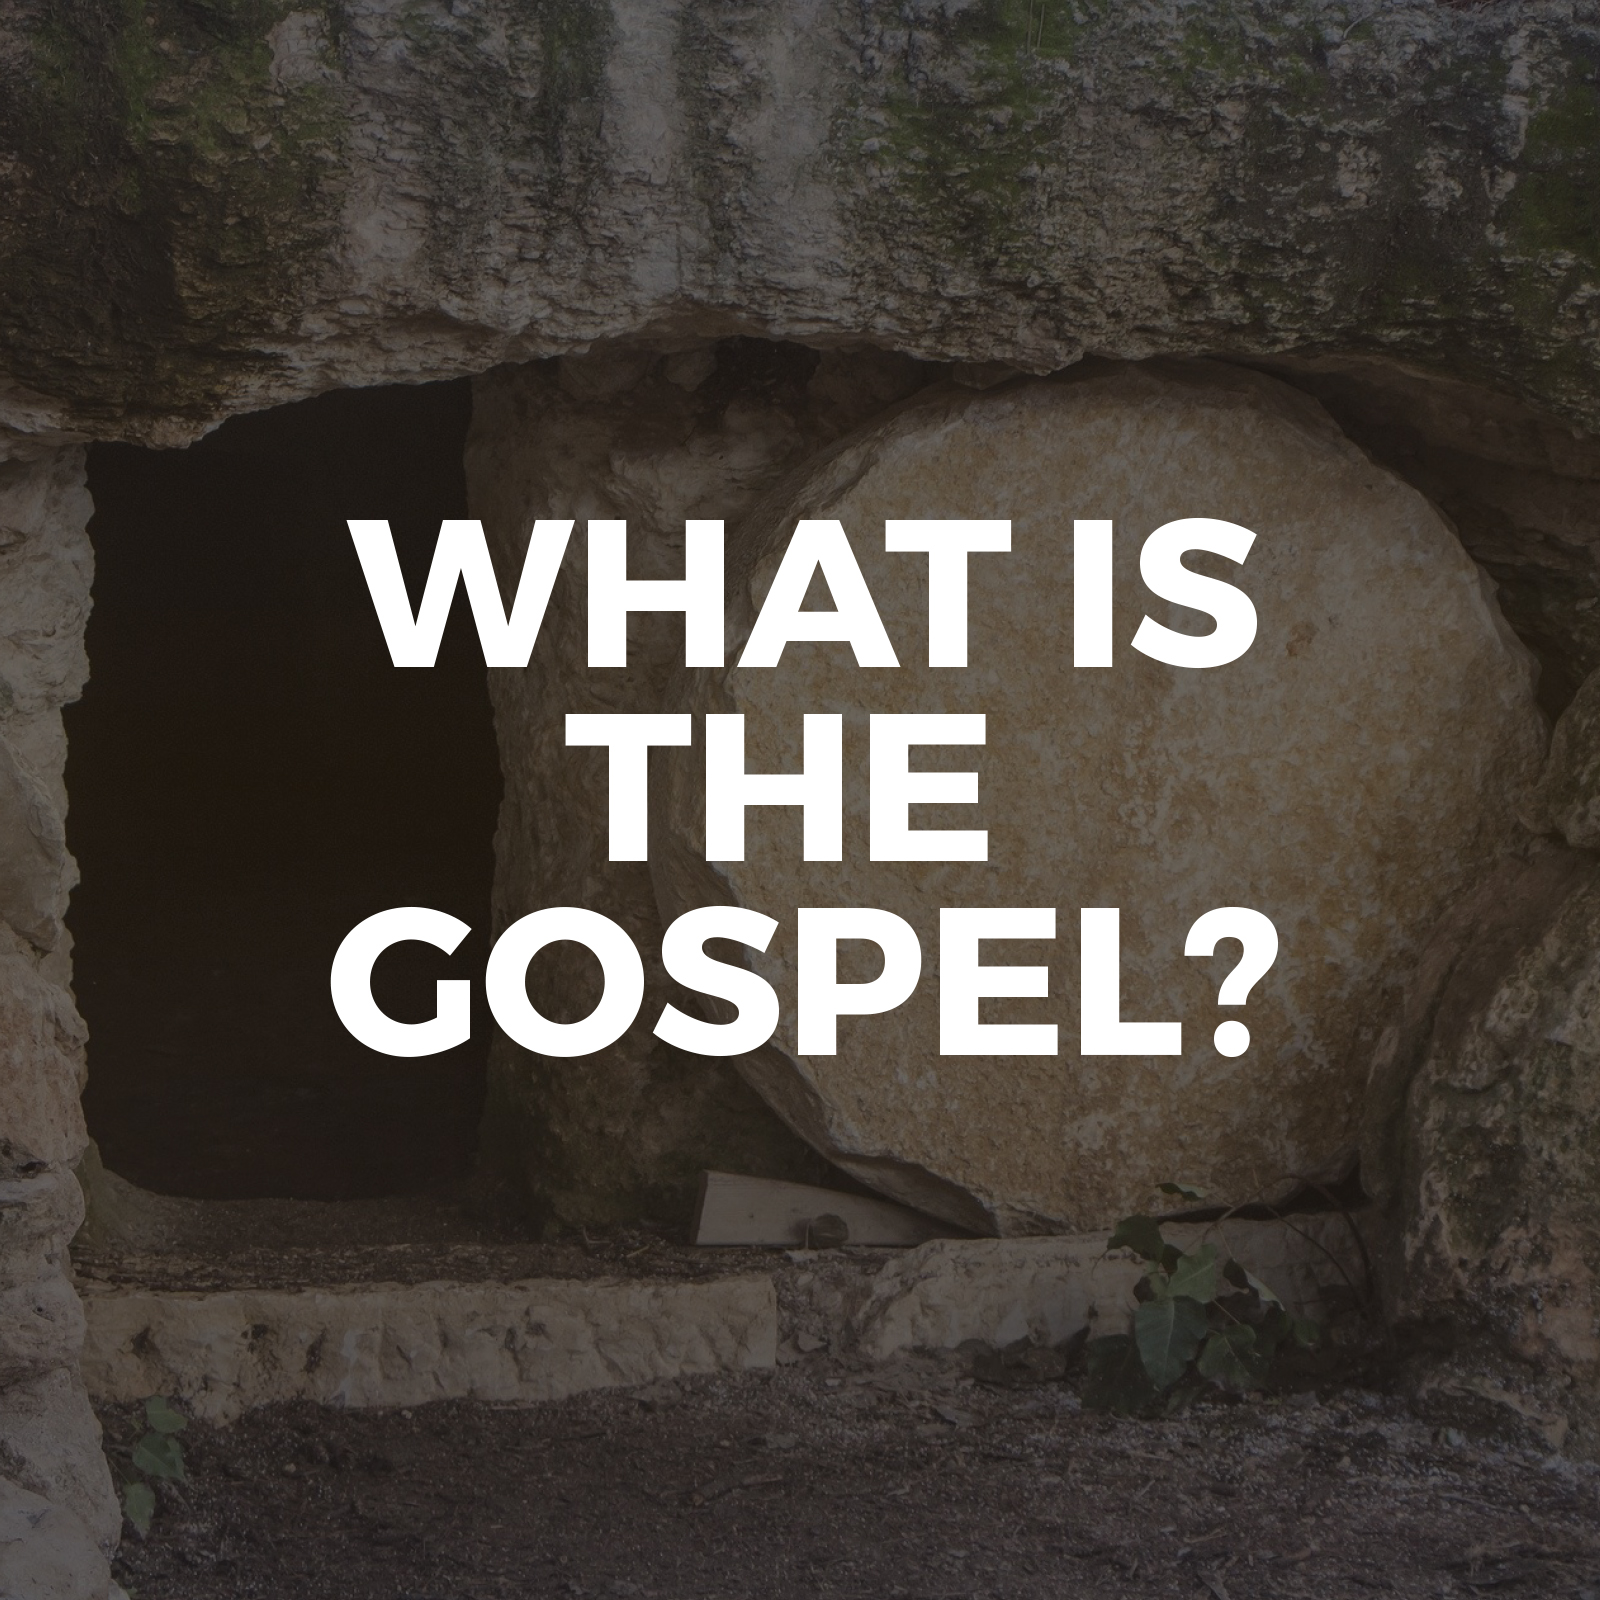 What is the gospel - Sermon Series - Hope Church Huddersfield